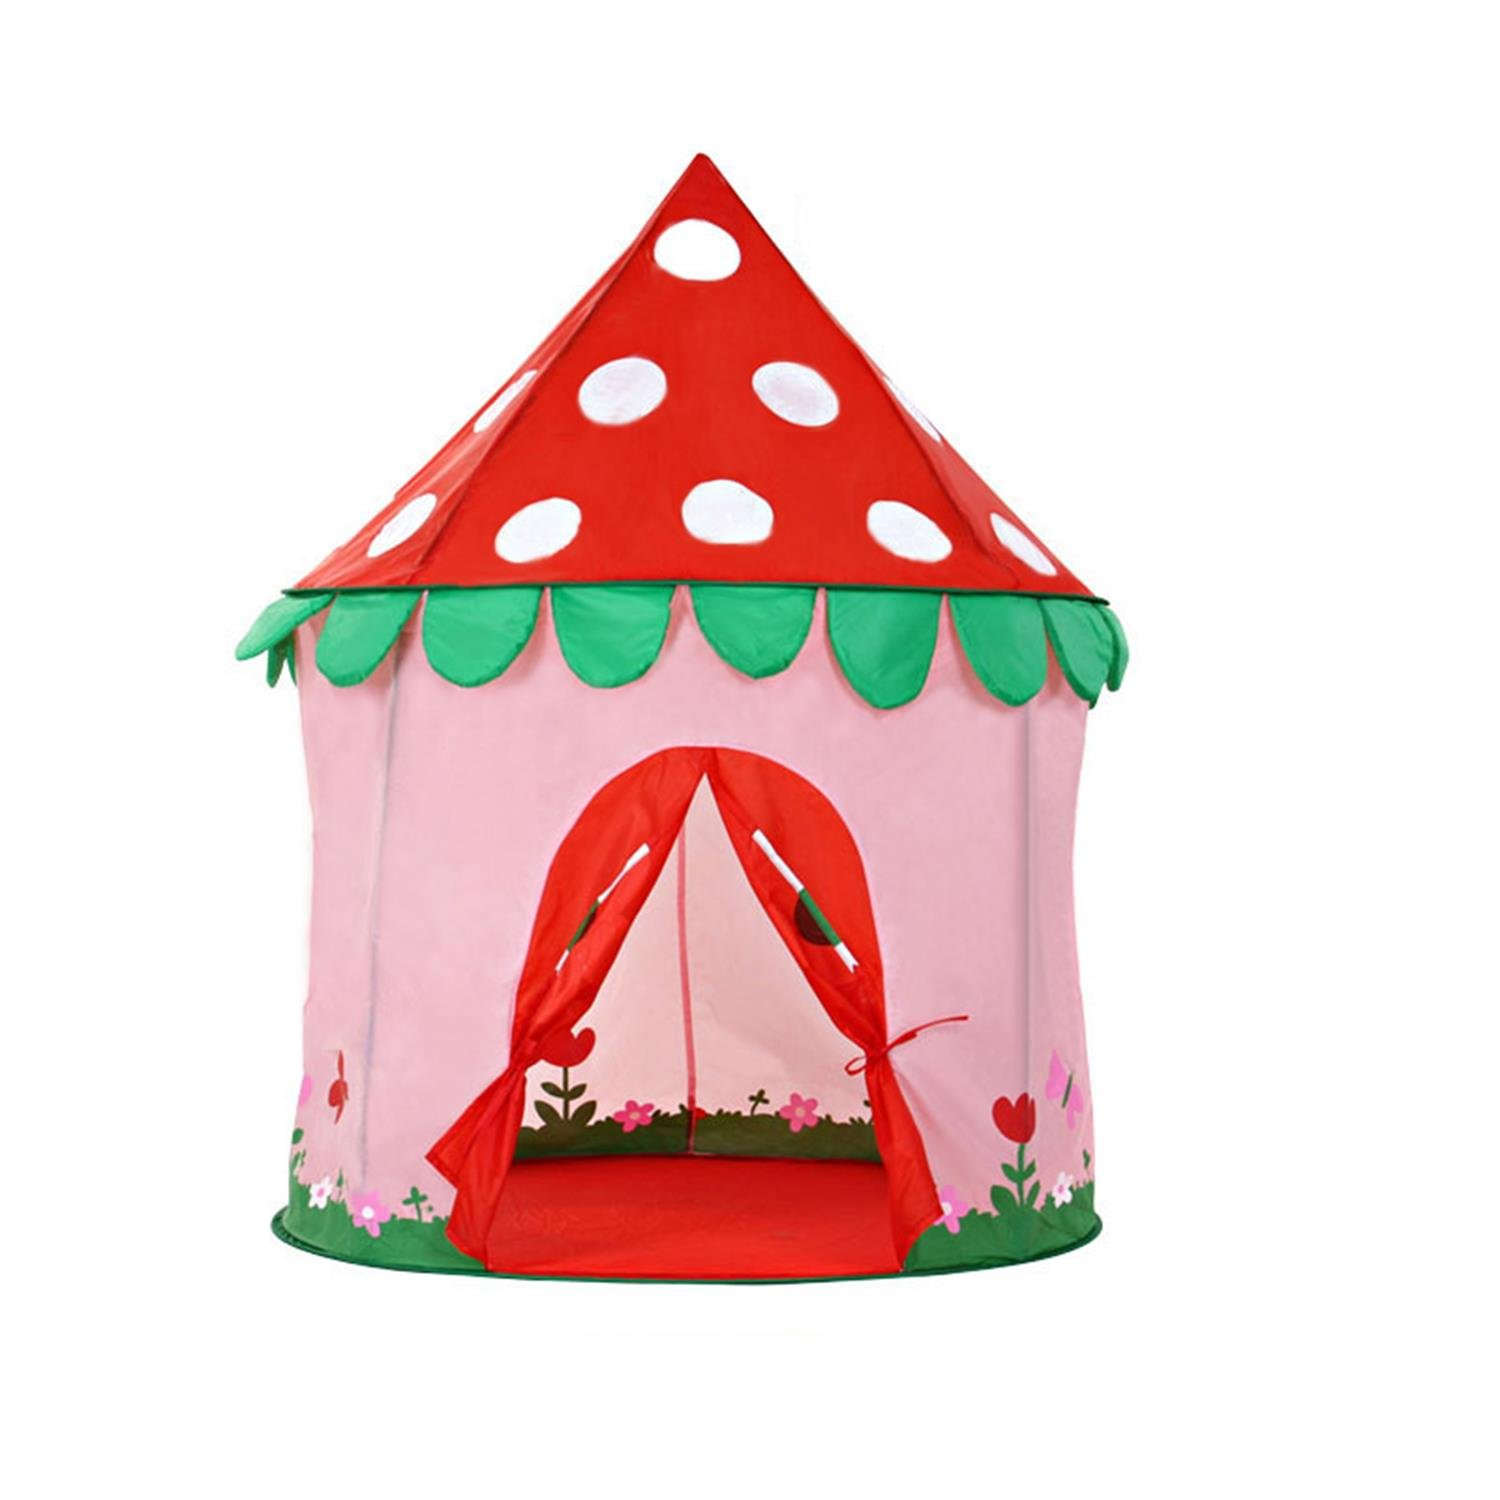 ALPIKA Strawberry Castle Playhouse, Indoor and Outdoor Kids Play Tent with Free Carrying Bag